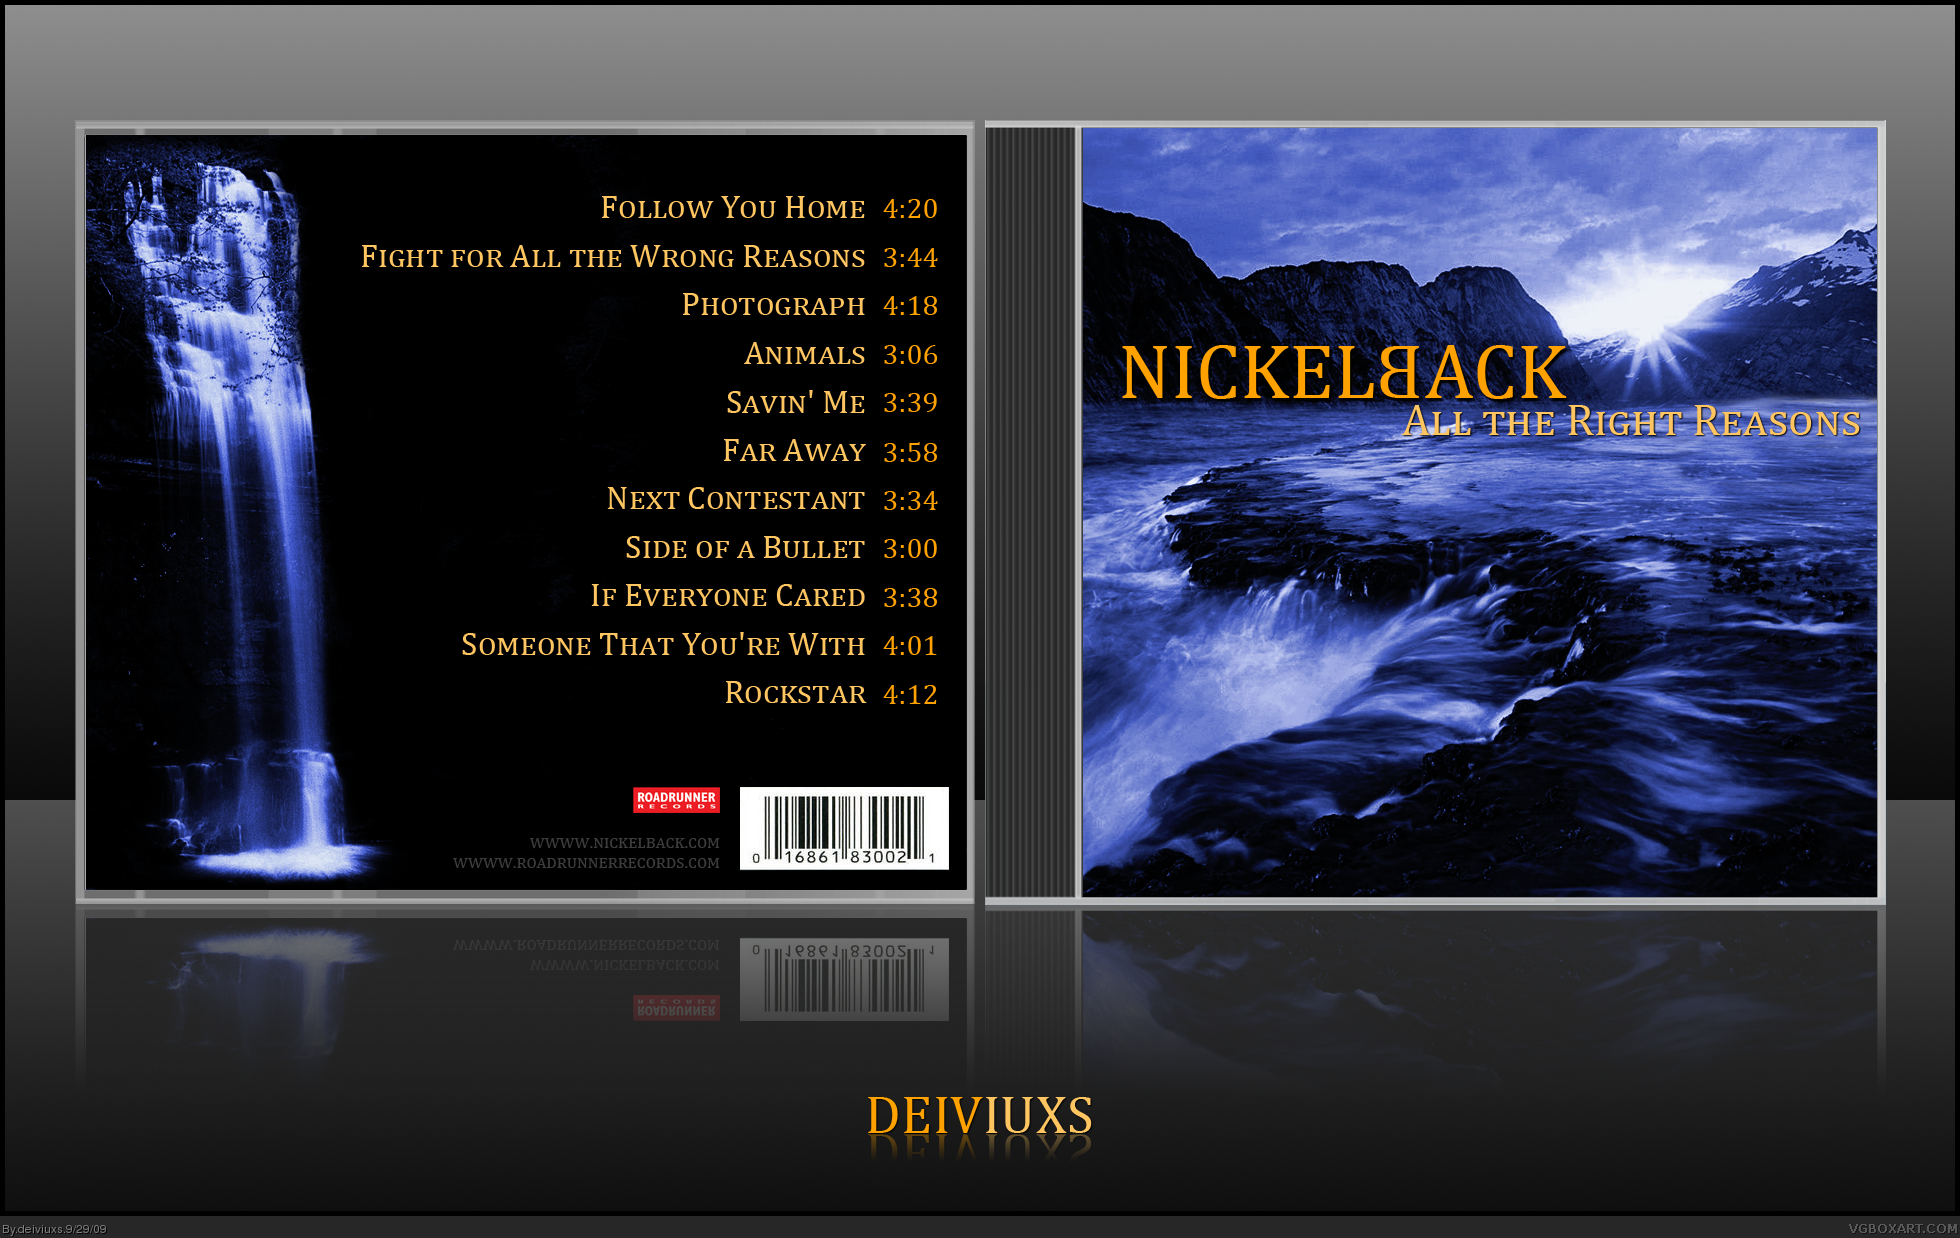 Viewing full size Nickelback - All the Right Reasons box cover